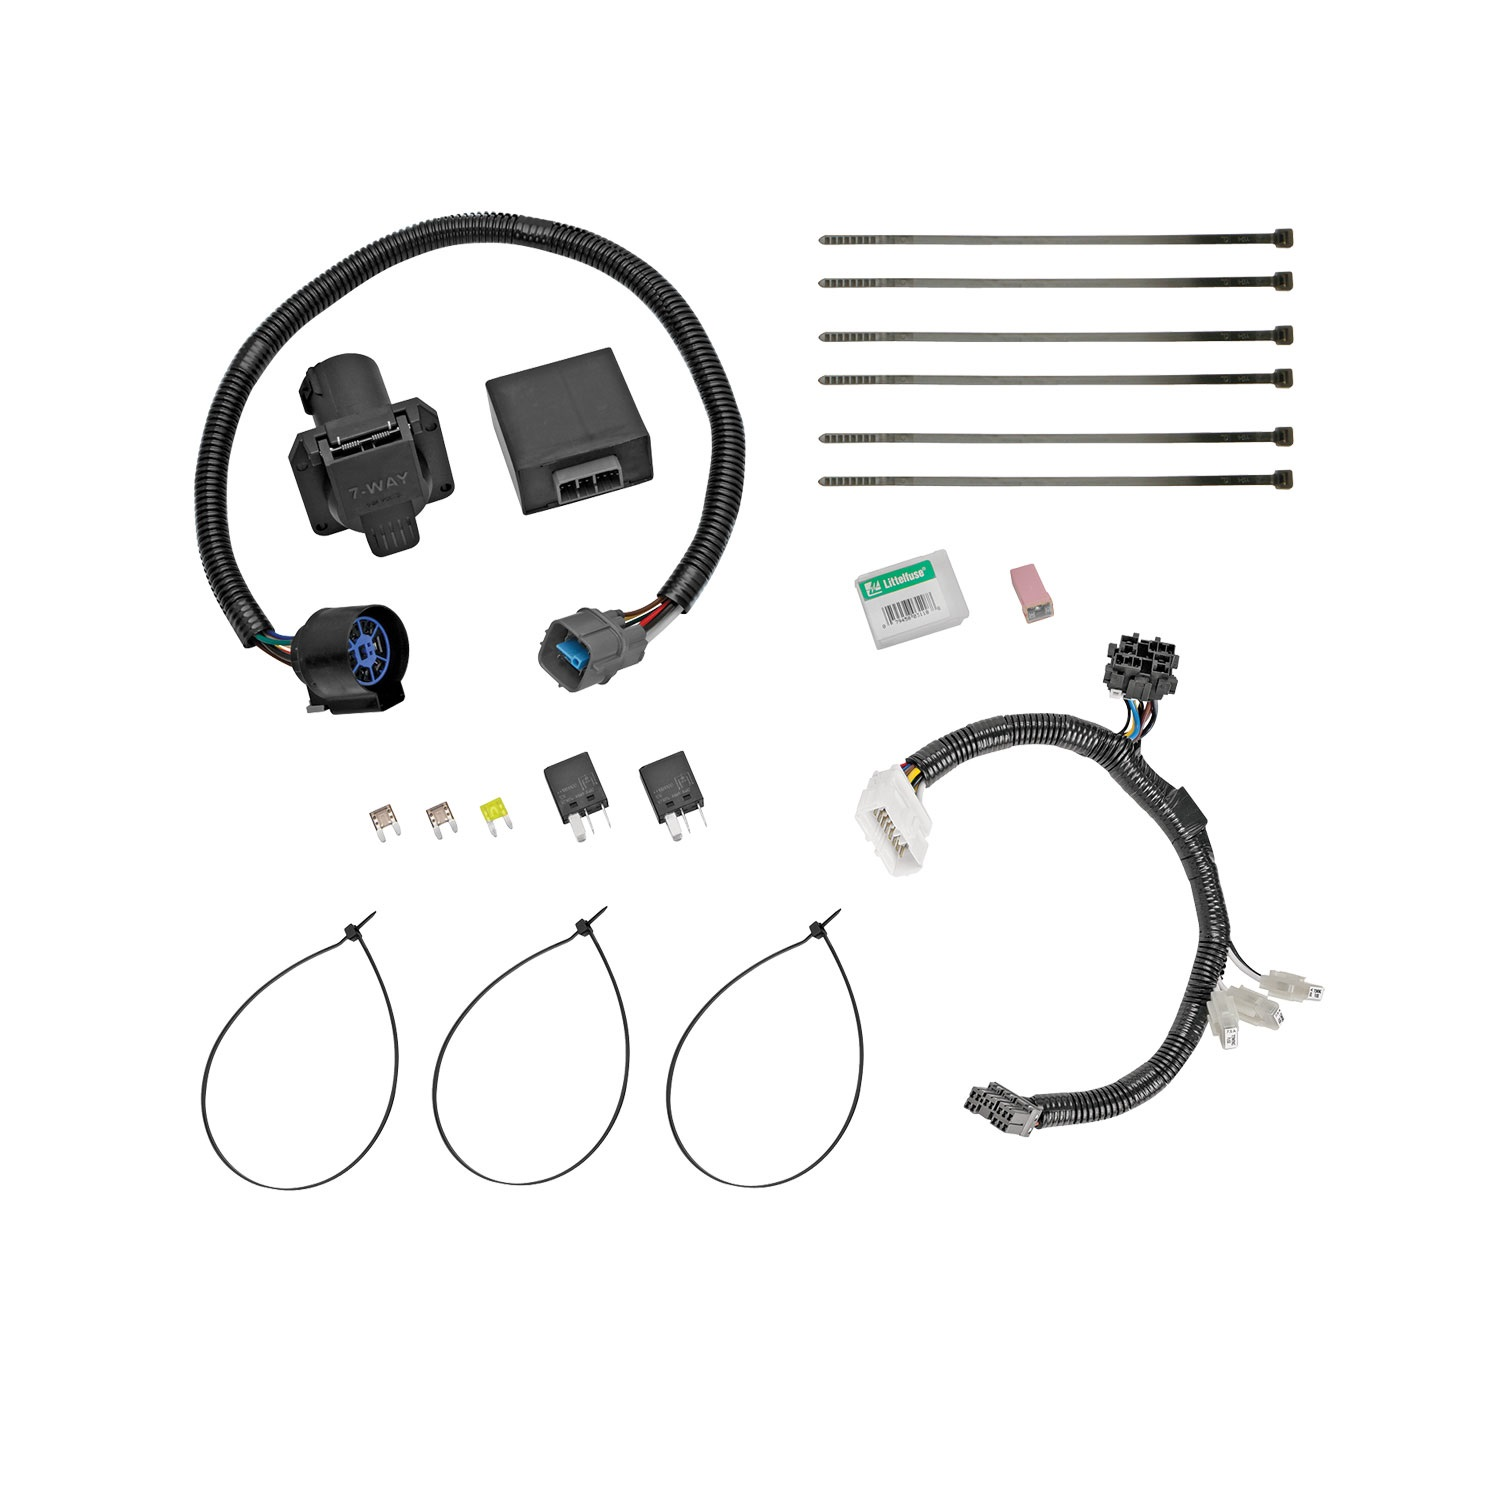 ford replacement oem tow package wiring harness 7 way schematic ford replacement oem tow package wiring harness 7way [ 1500 x 1500 Pixel ]